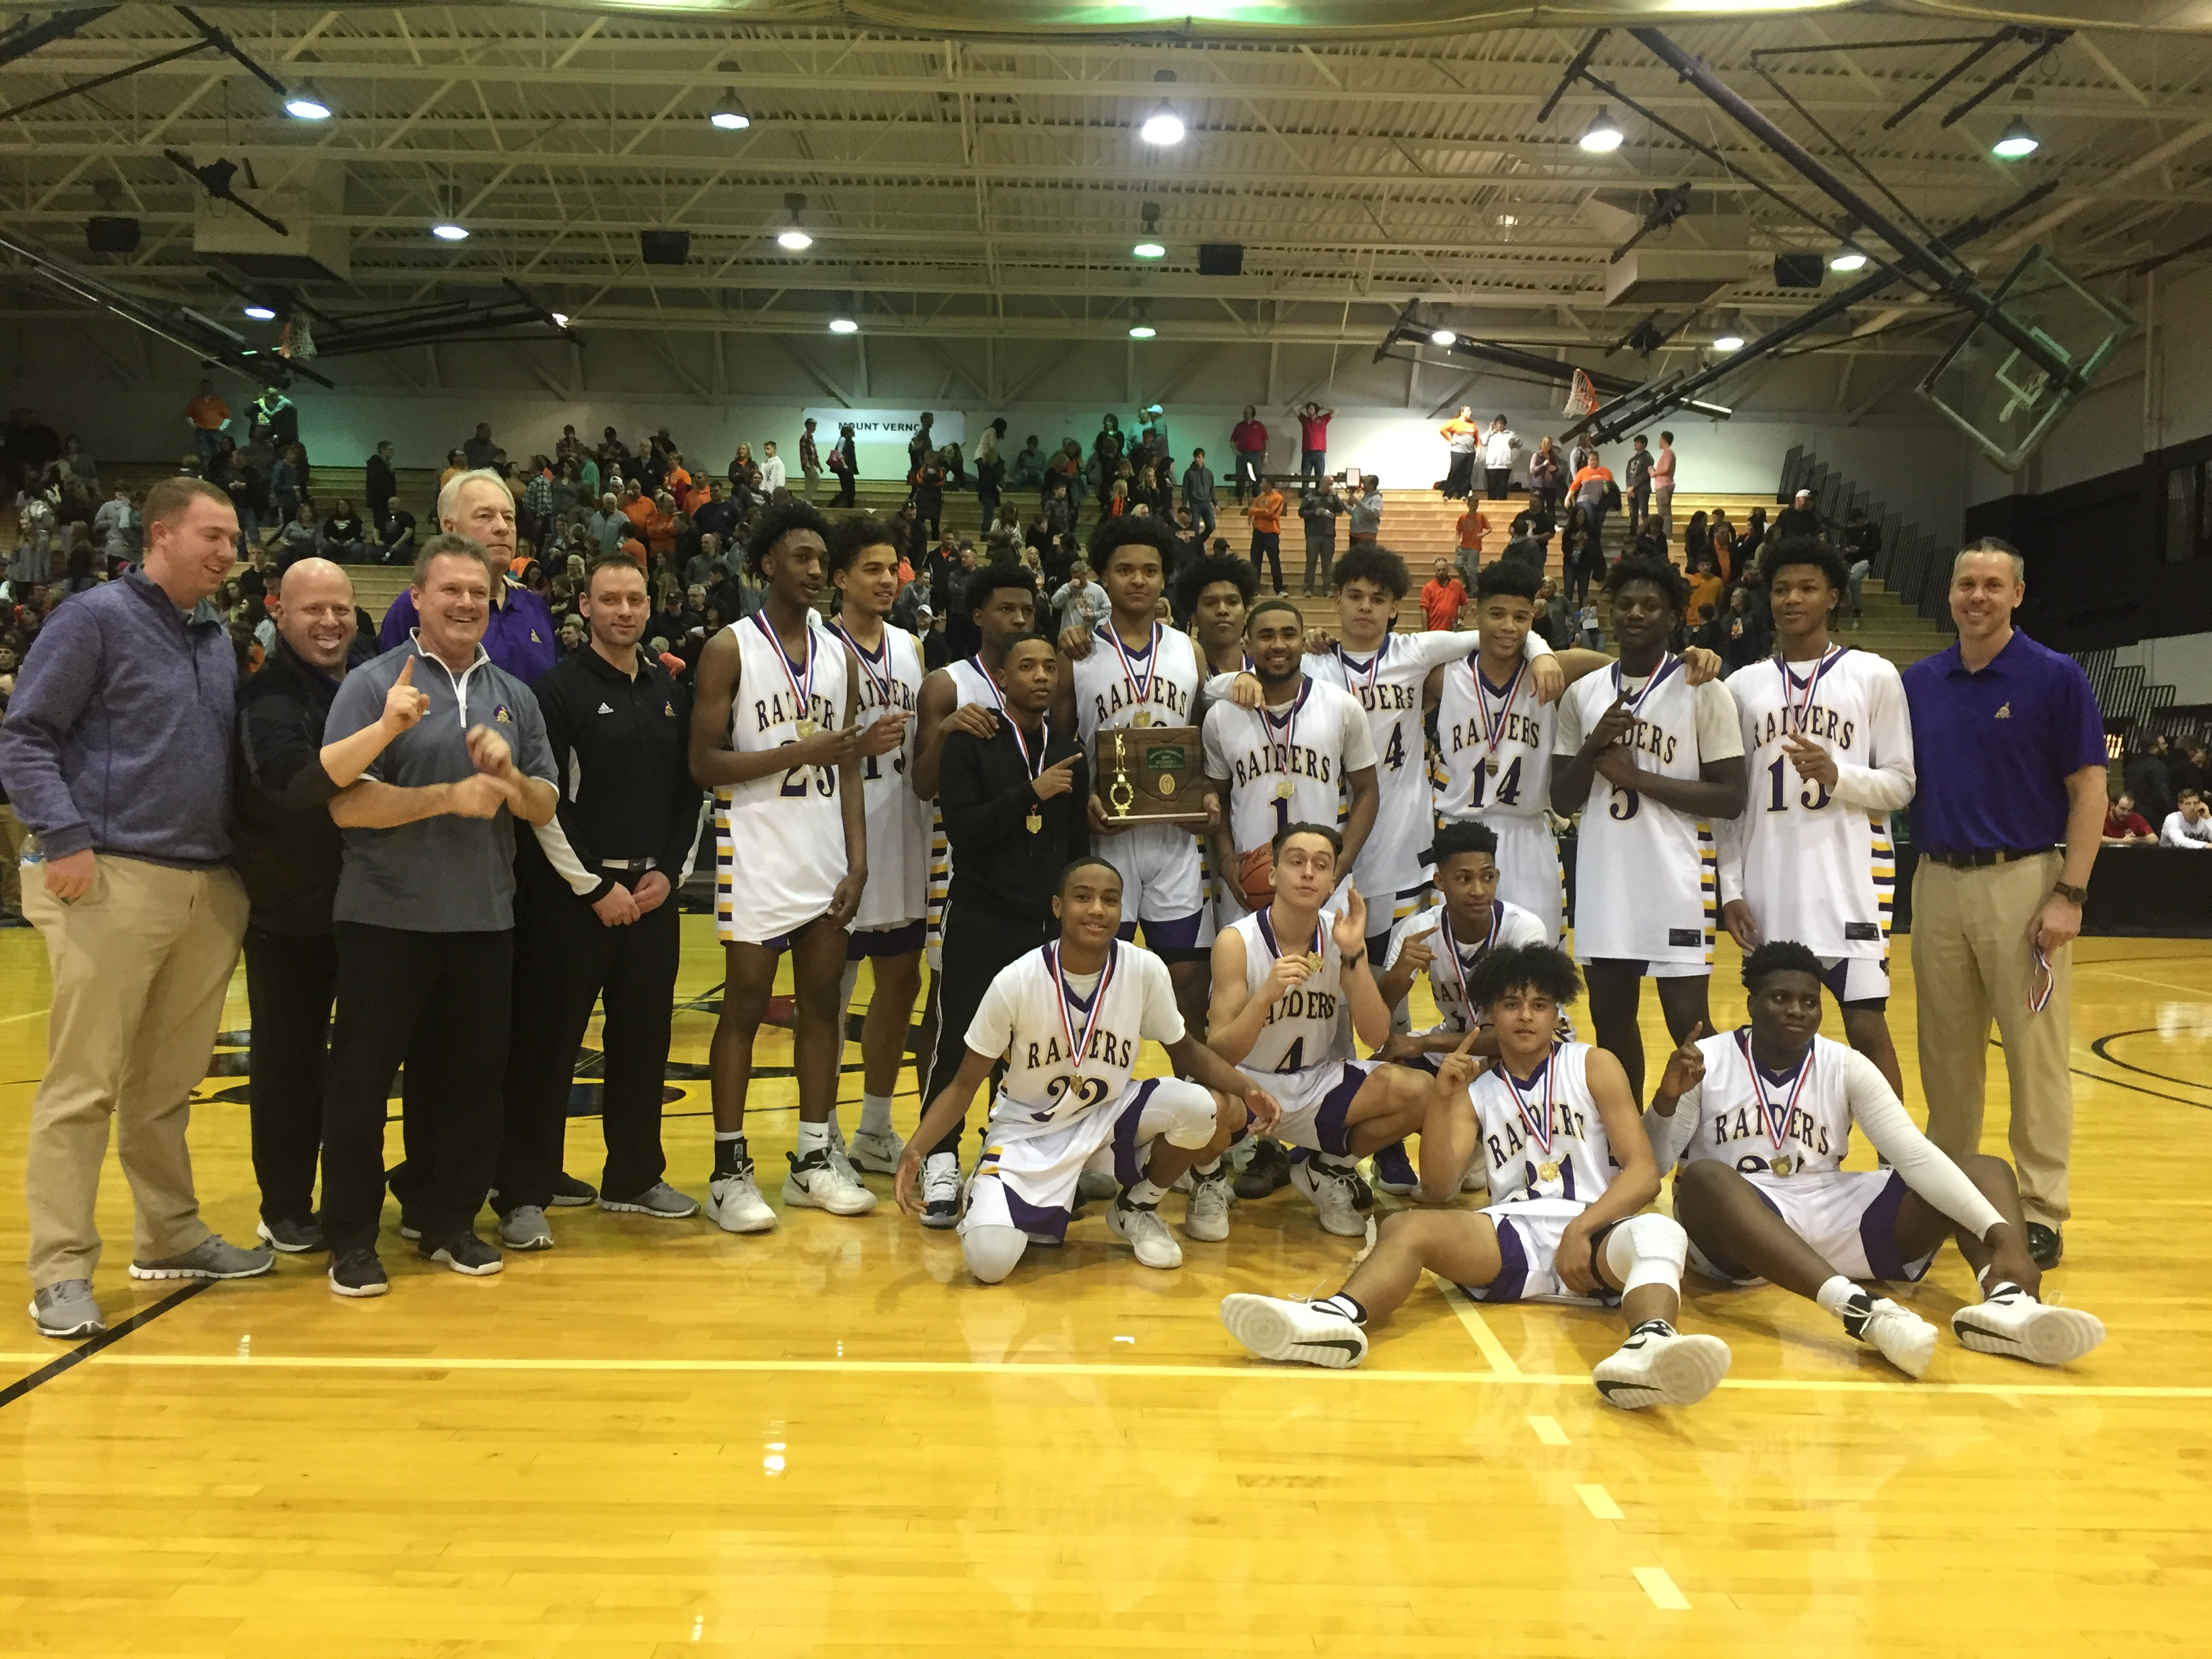 DISTRICT CHAMPS!! Raiders' fast start buries Mount Vernon in title game